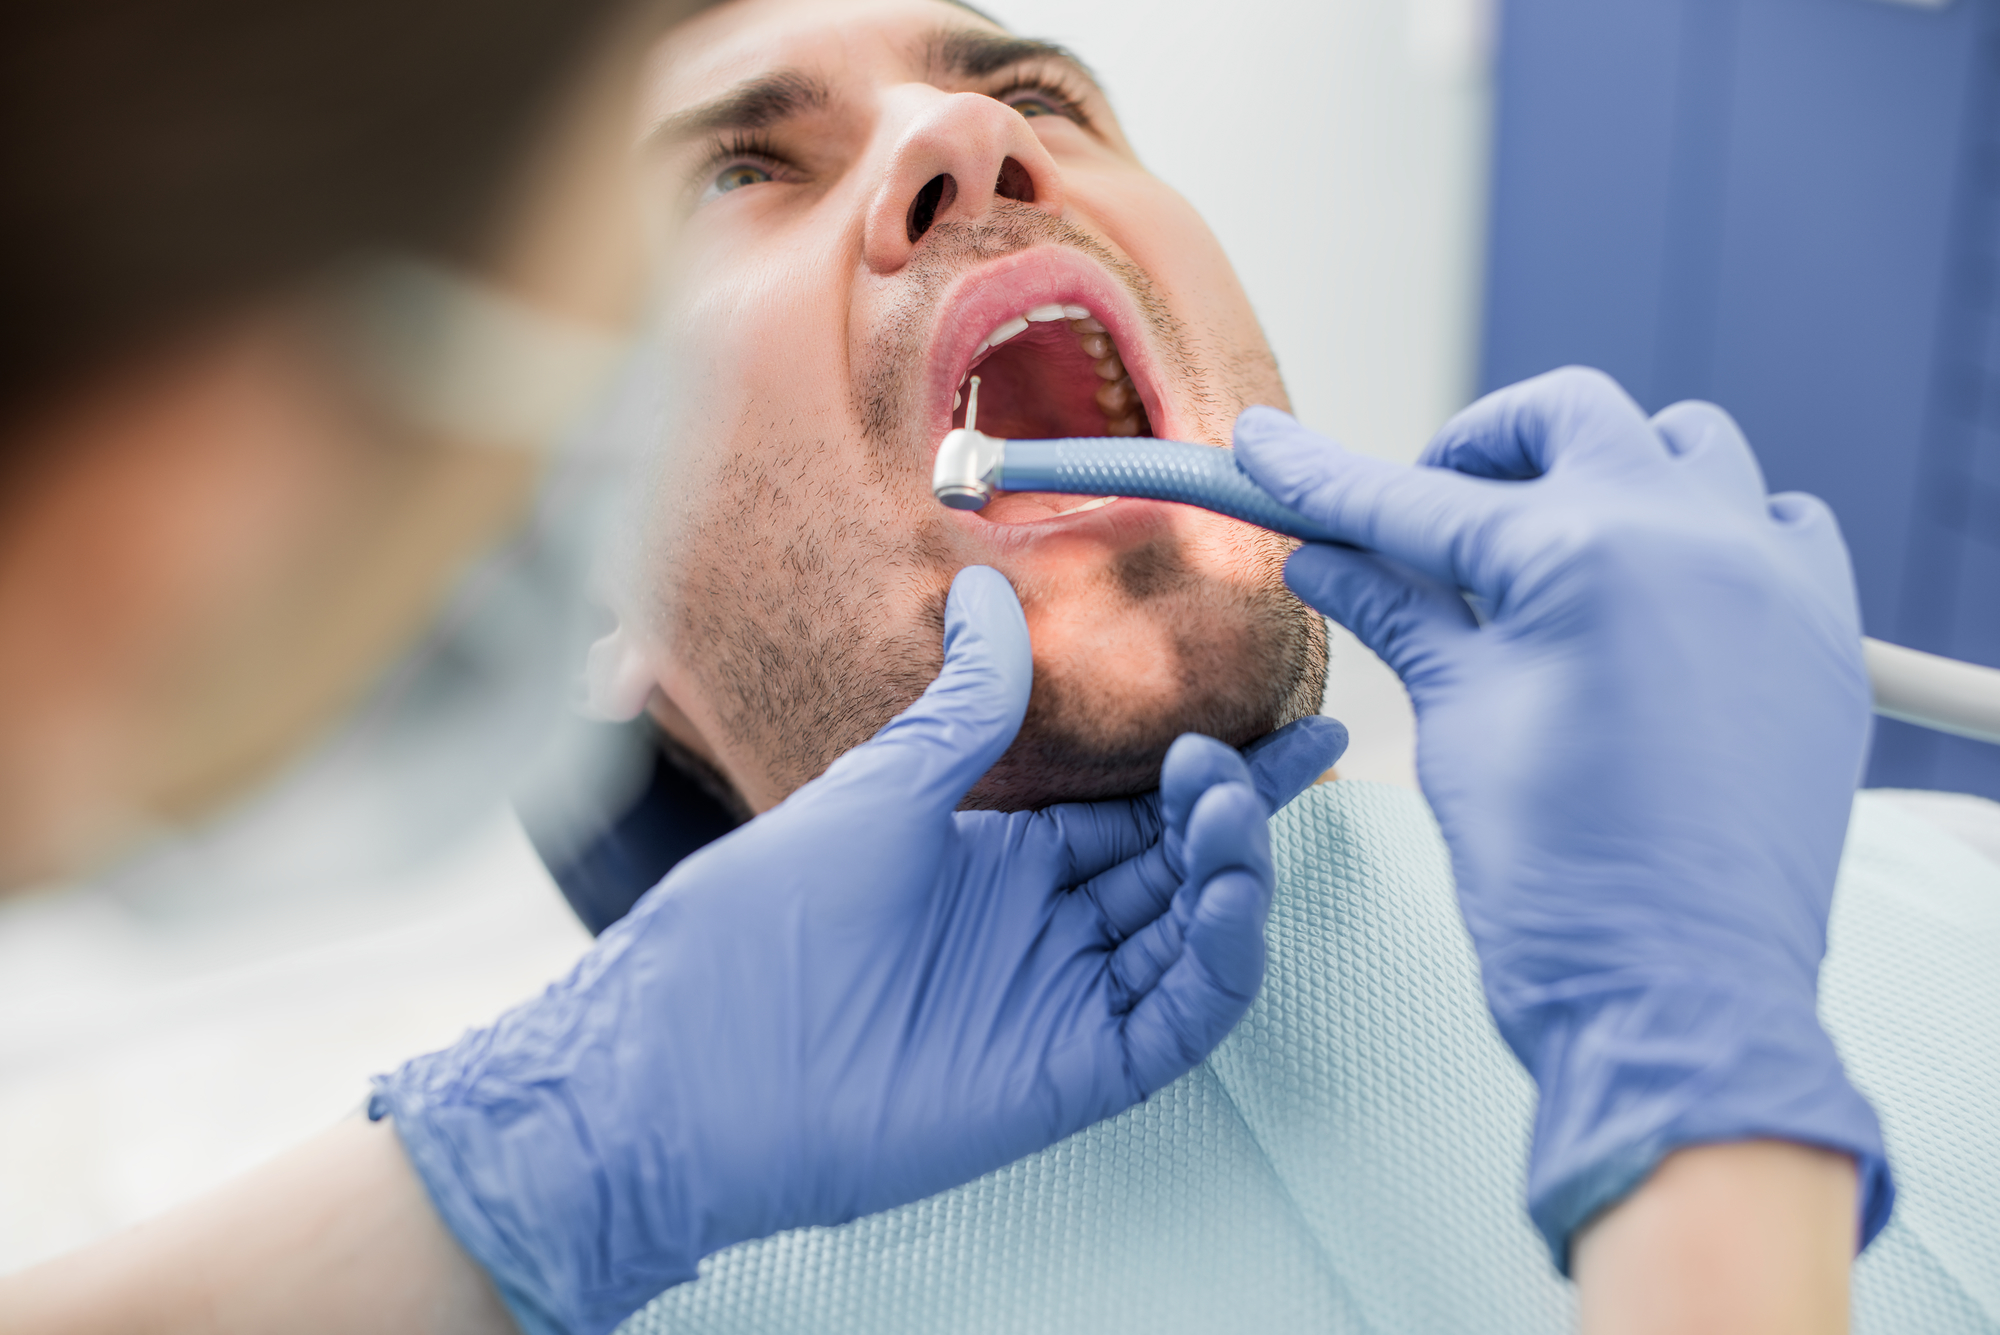 where is the best same day dentist 33401?